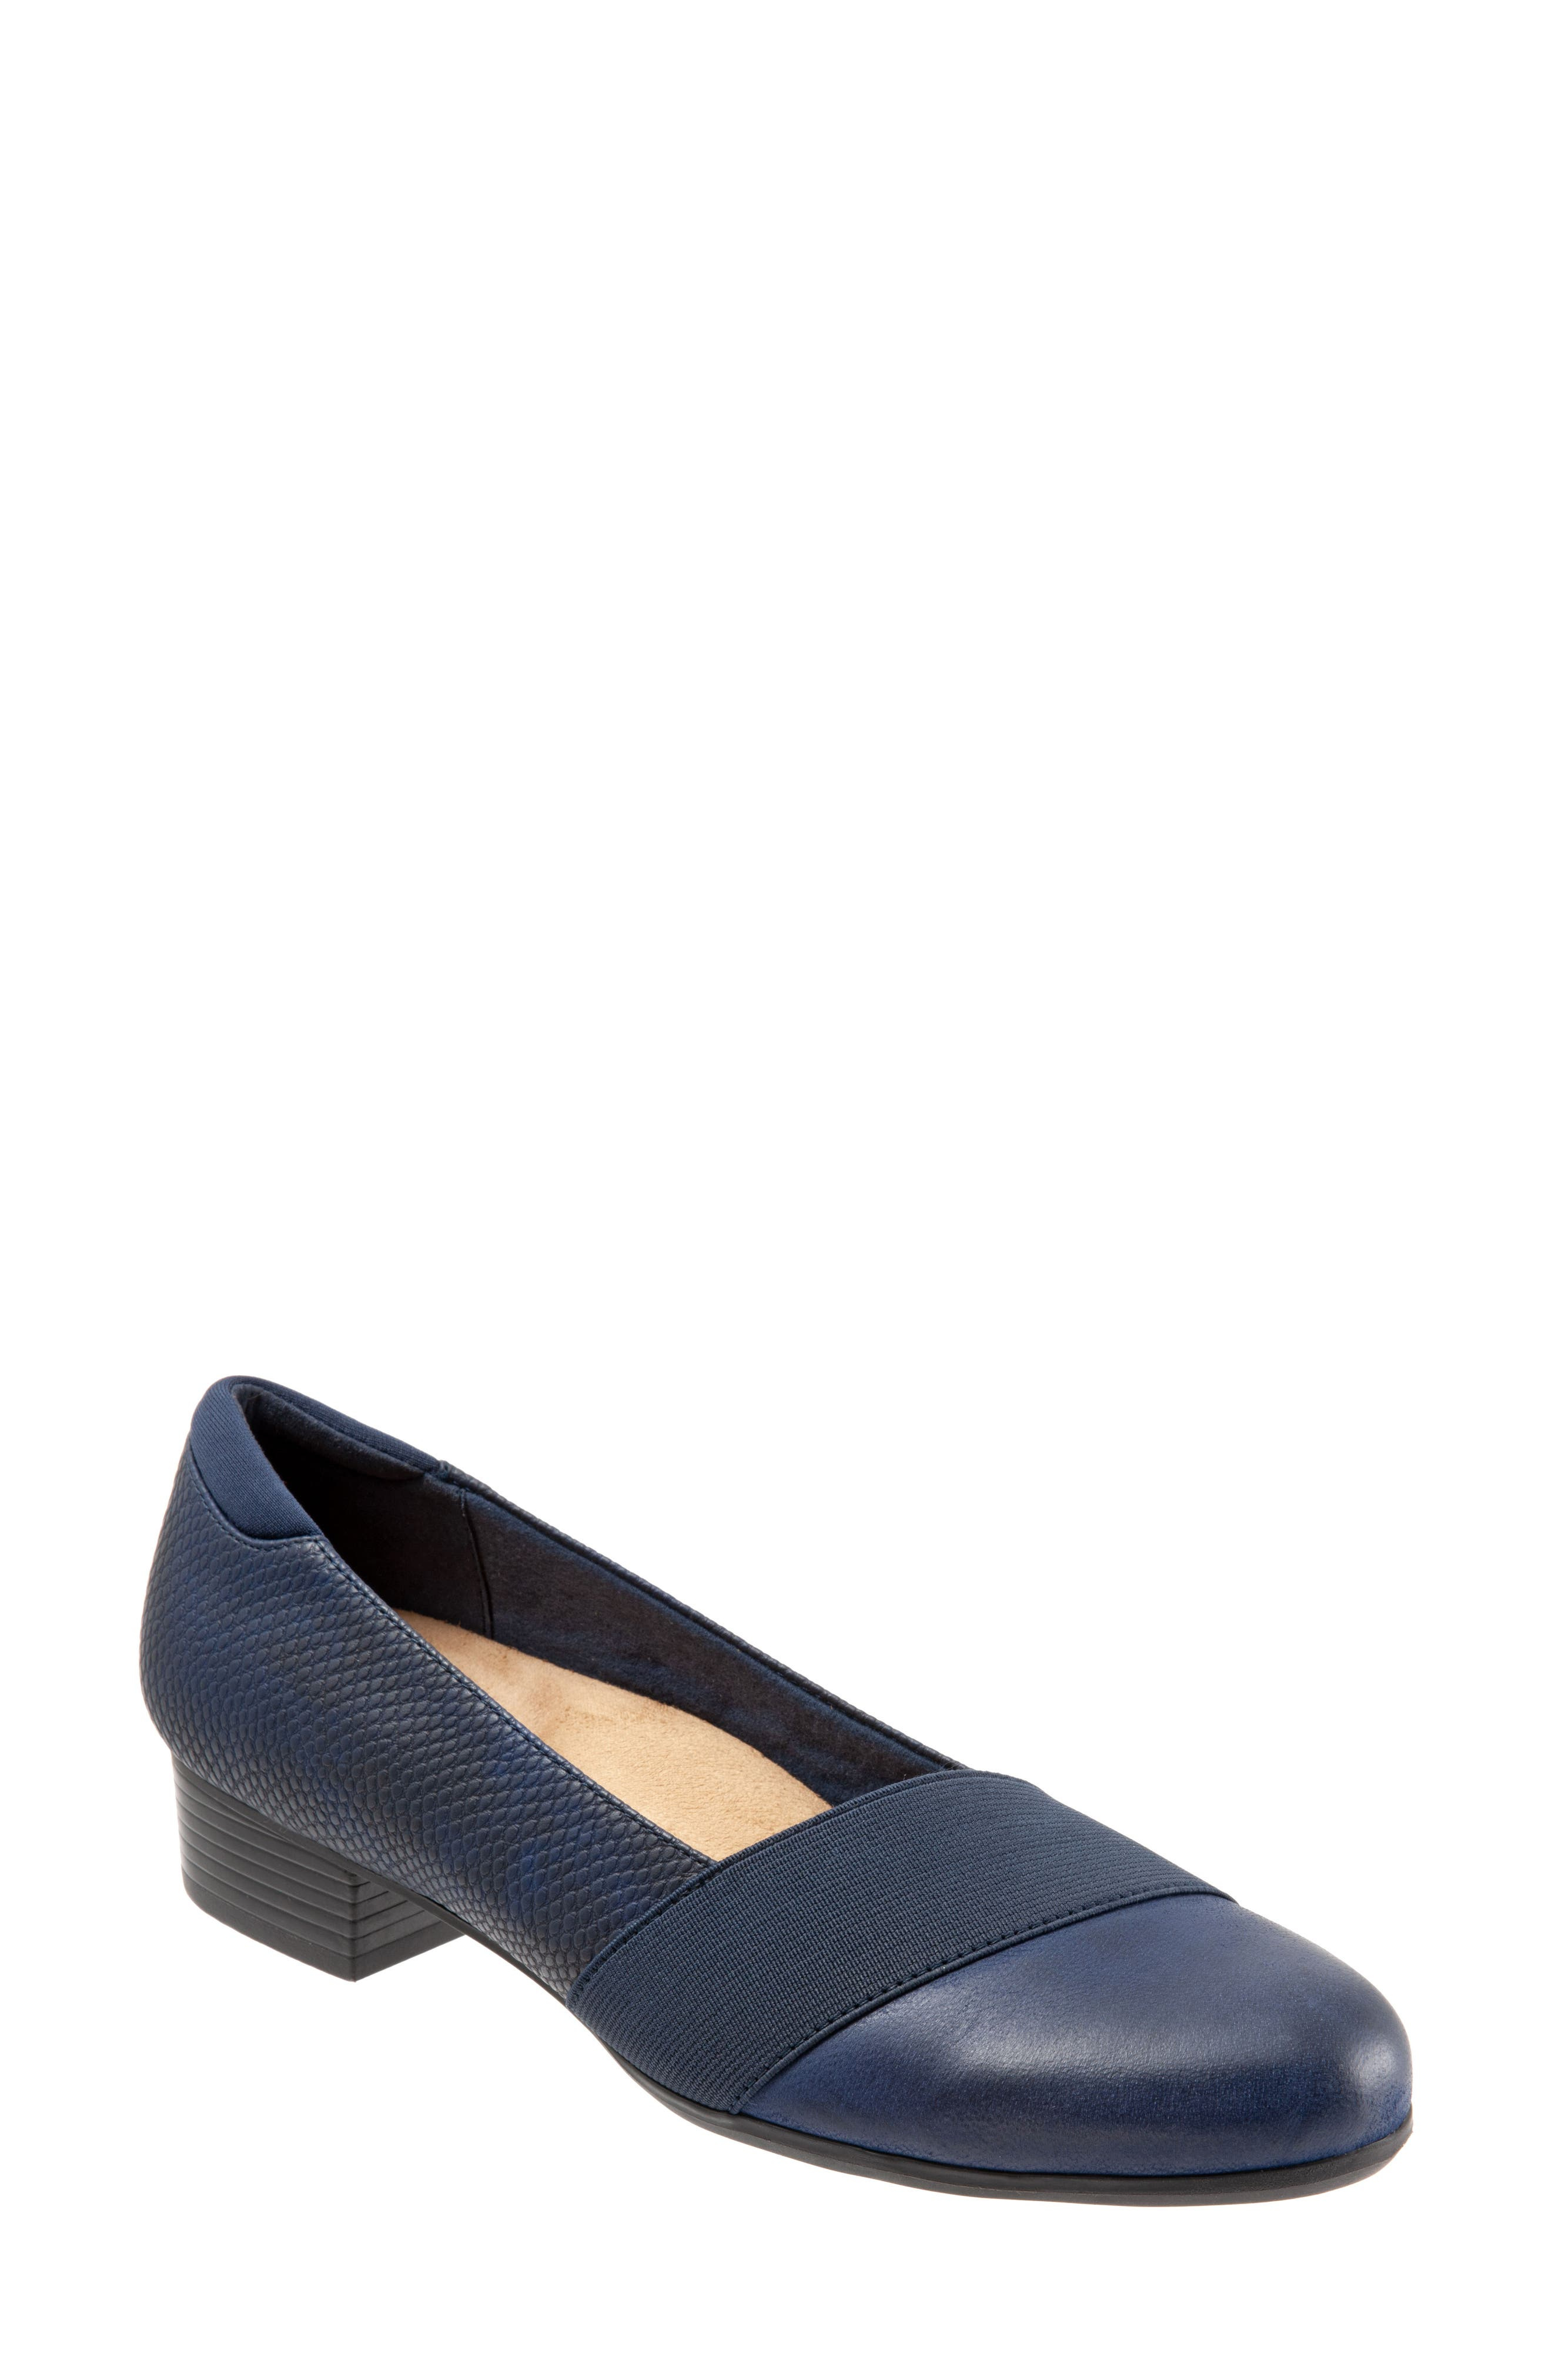 TROTTERS,                             Melinda Loafer,                             Main thumbnail 1, color,                             NAVY LEATHER